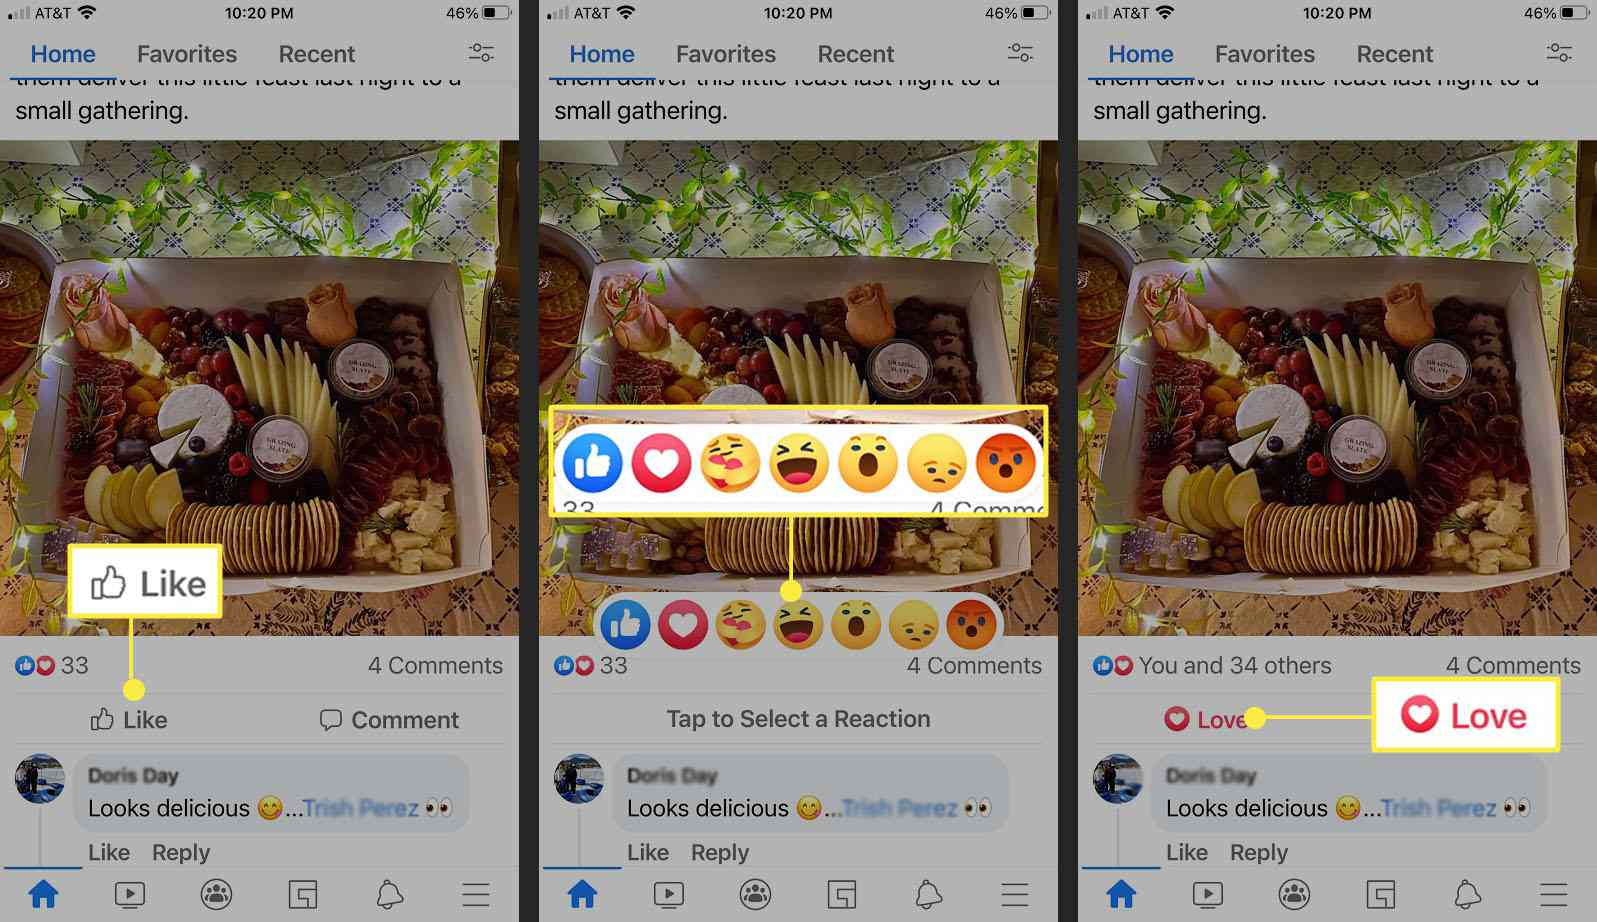 Facebook - liking a post on mobile app